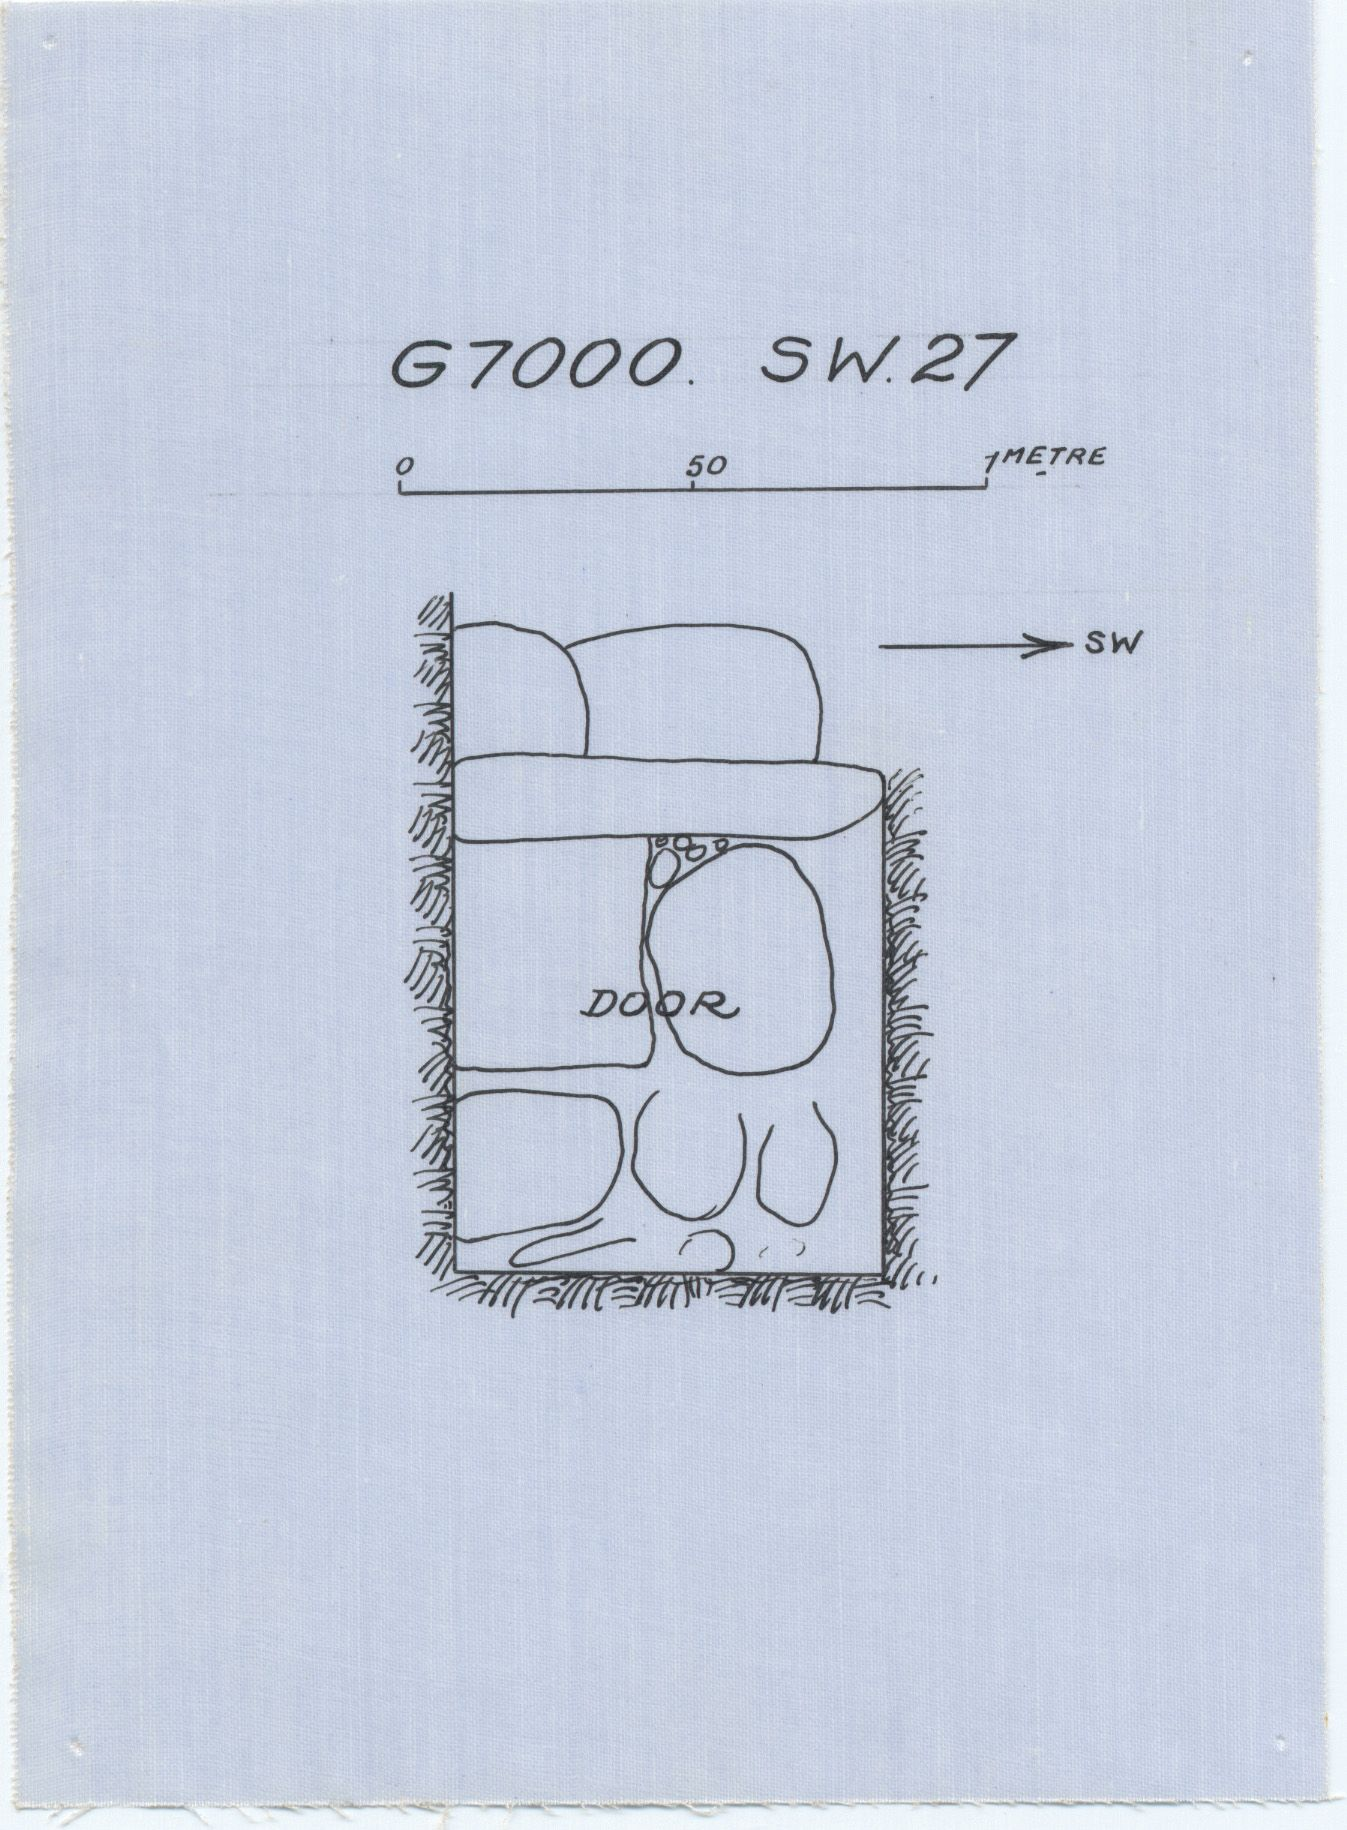 Maps and plans: G 7000 SW 27